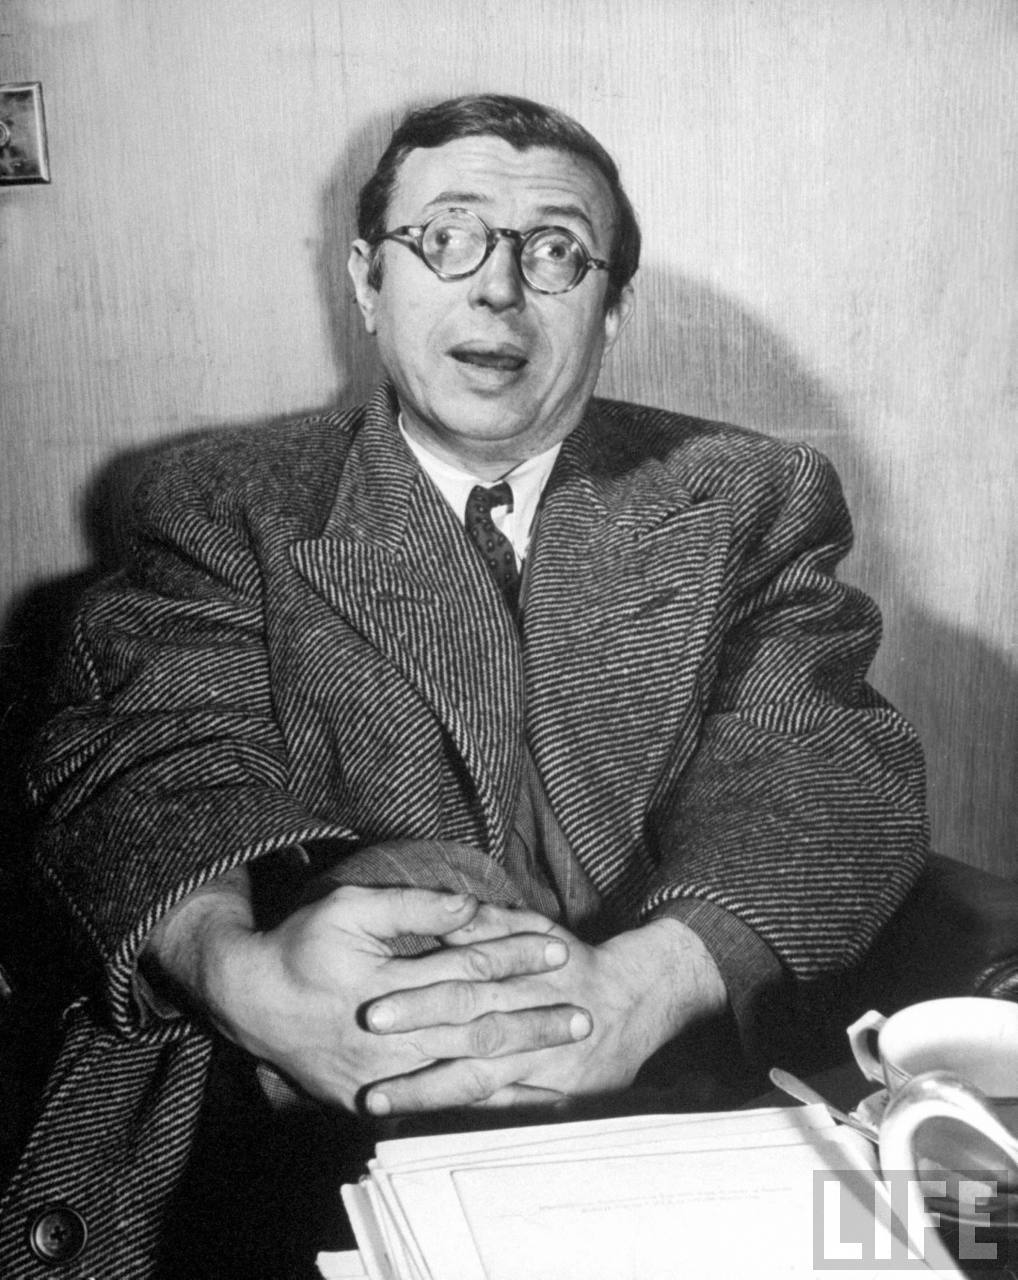 jean paul sarte s life and work Jean-paul sartre, 74, dies in paris by alden whitman jean-paul sartre letters and life, the work provoked only limited interest in literary circles.